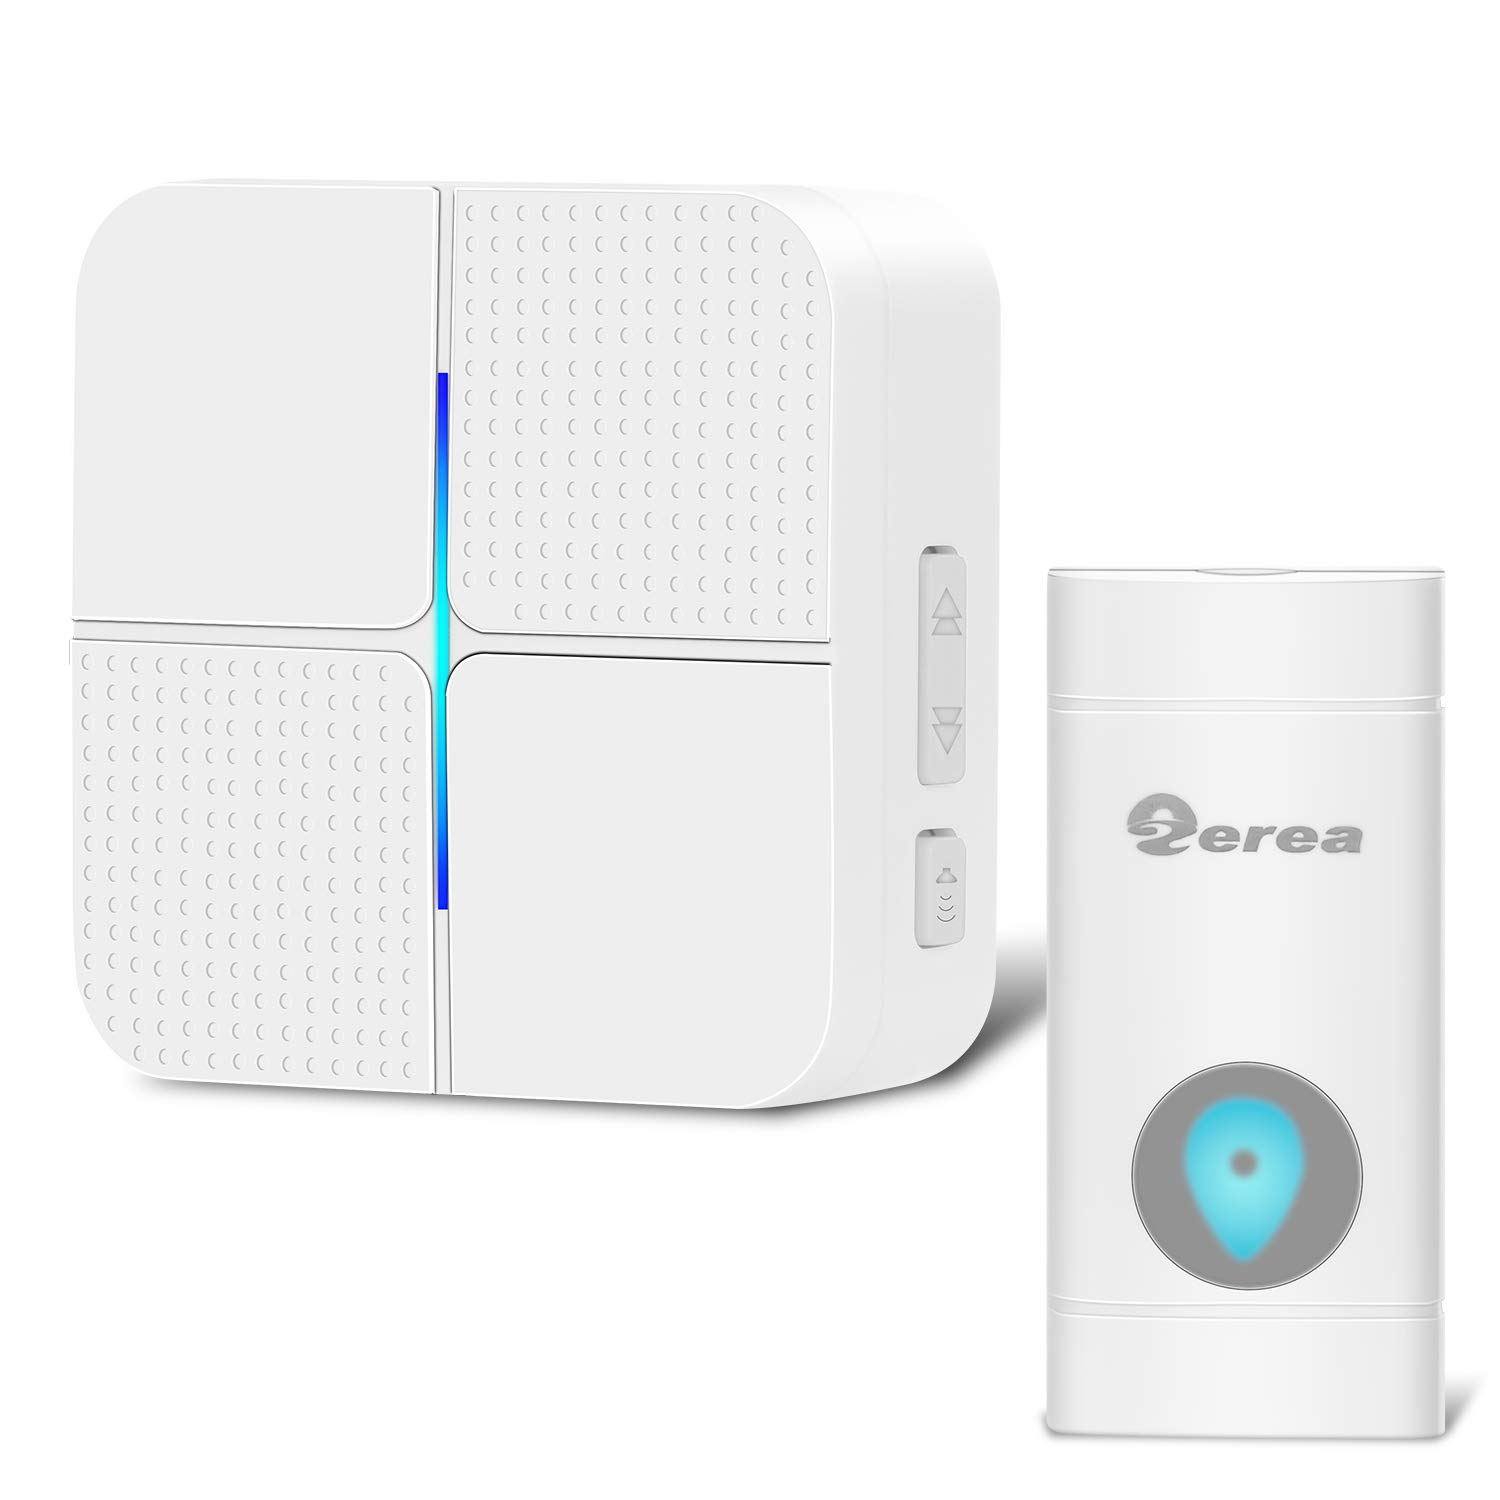 Wireless Doorbell Operating at over 600 Feet Range with Plug-In Receiver, Waterproof Door Bell Chime Kit with 52 Melodies, 4-Level Volume & Blue LED Flashing Light, Battery Included ZEREA Model X5